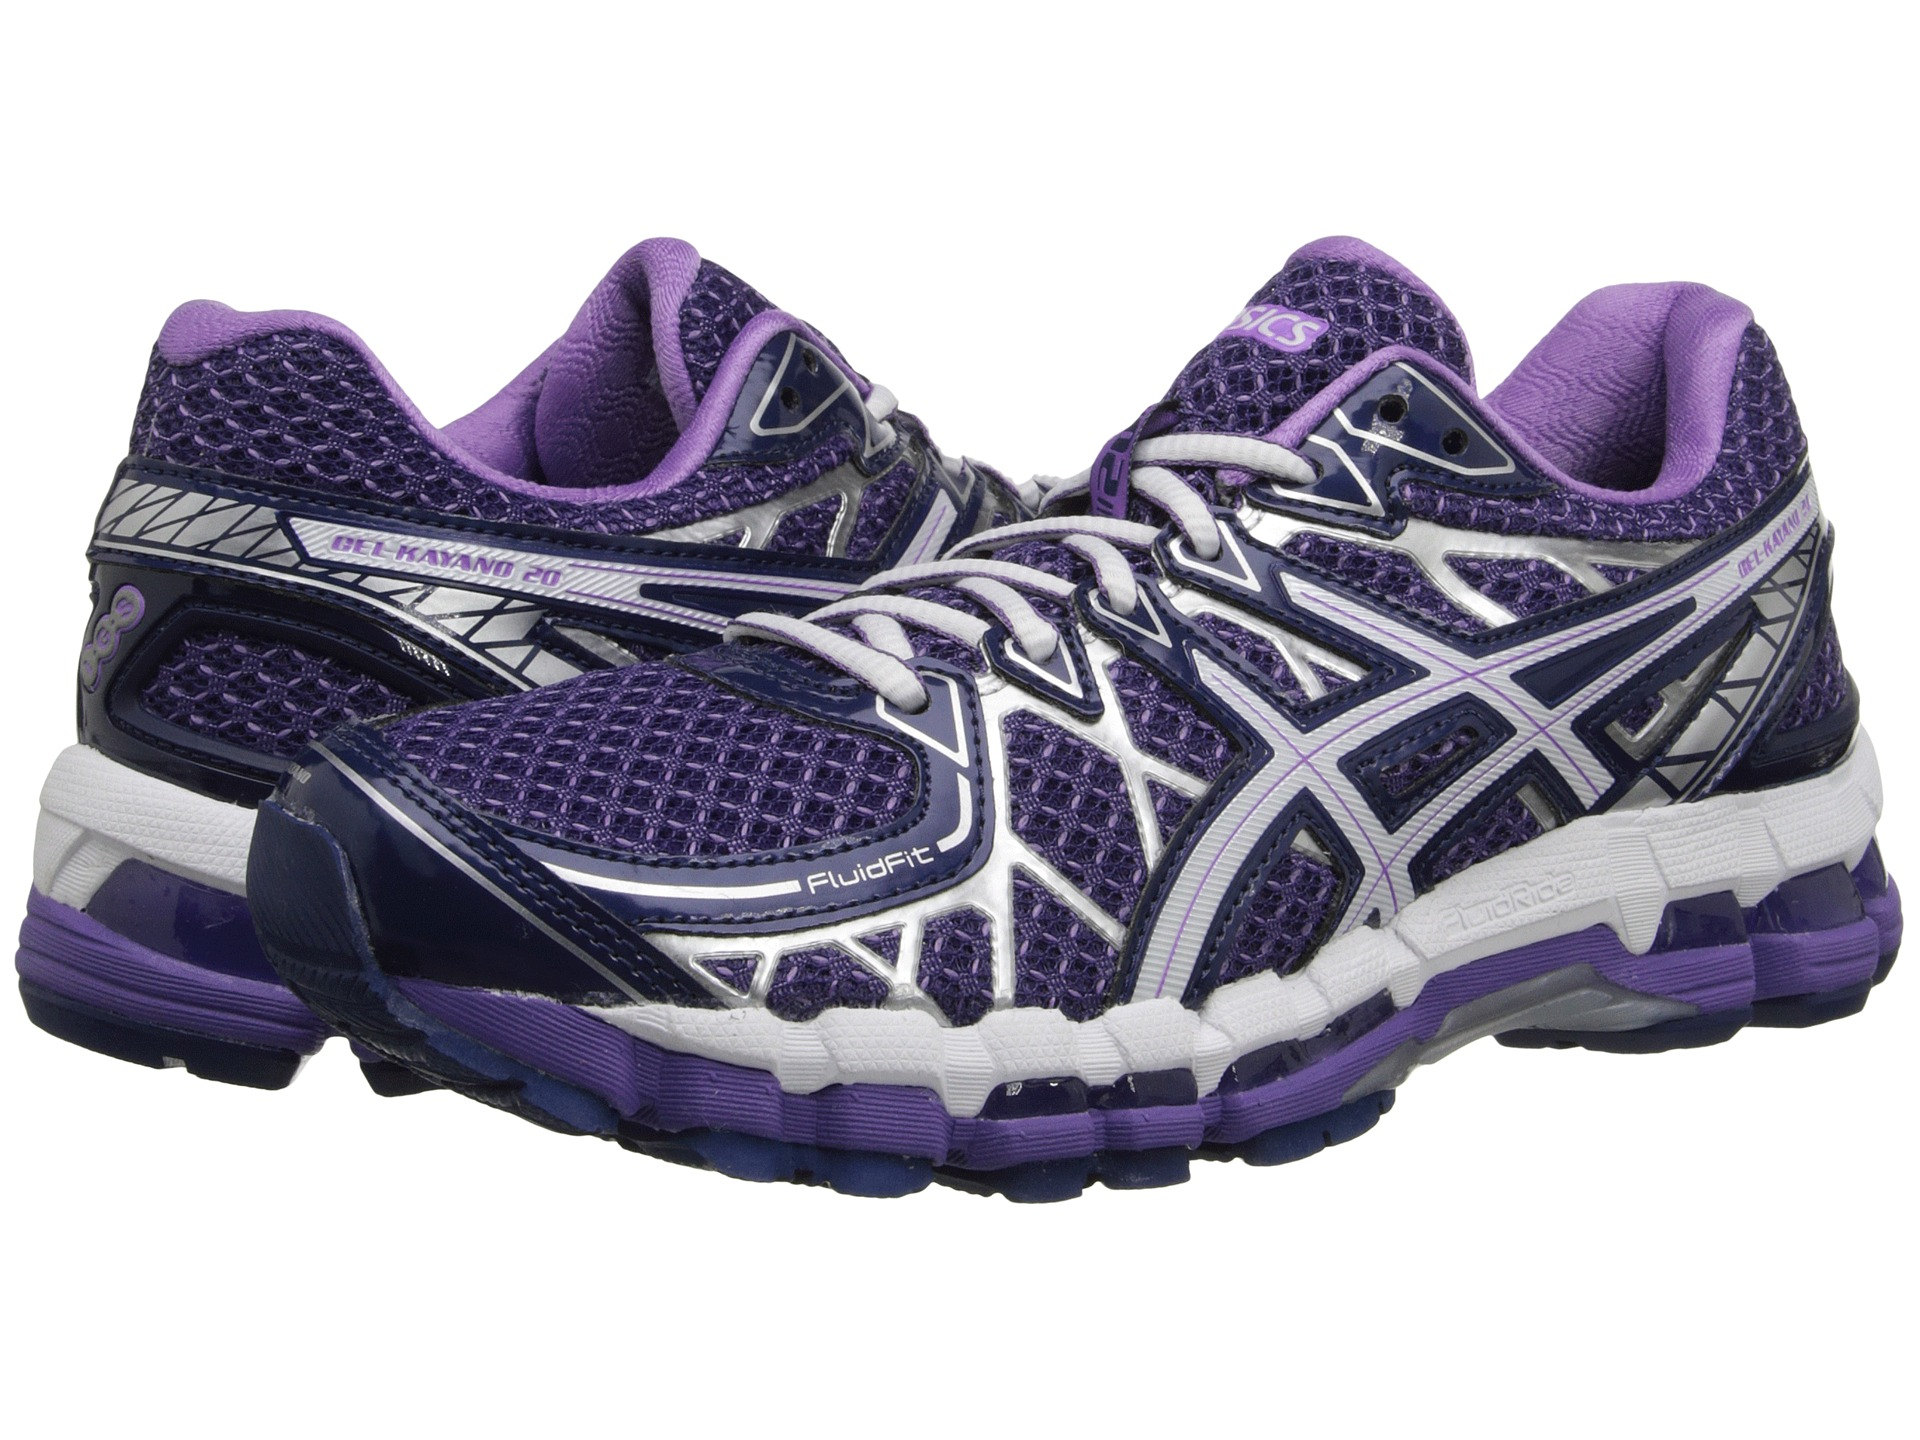 asics gel kayano 20 purple white lavender. Black Bedroom Furniture Sets. Home Design Ideas